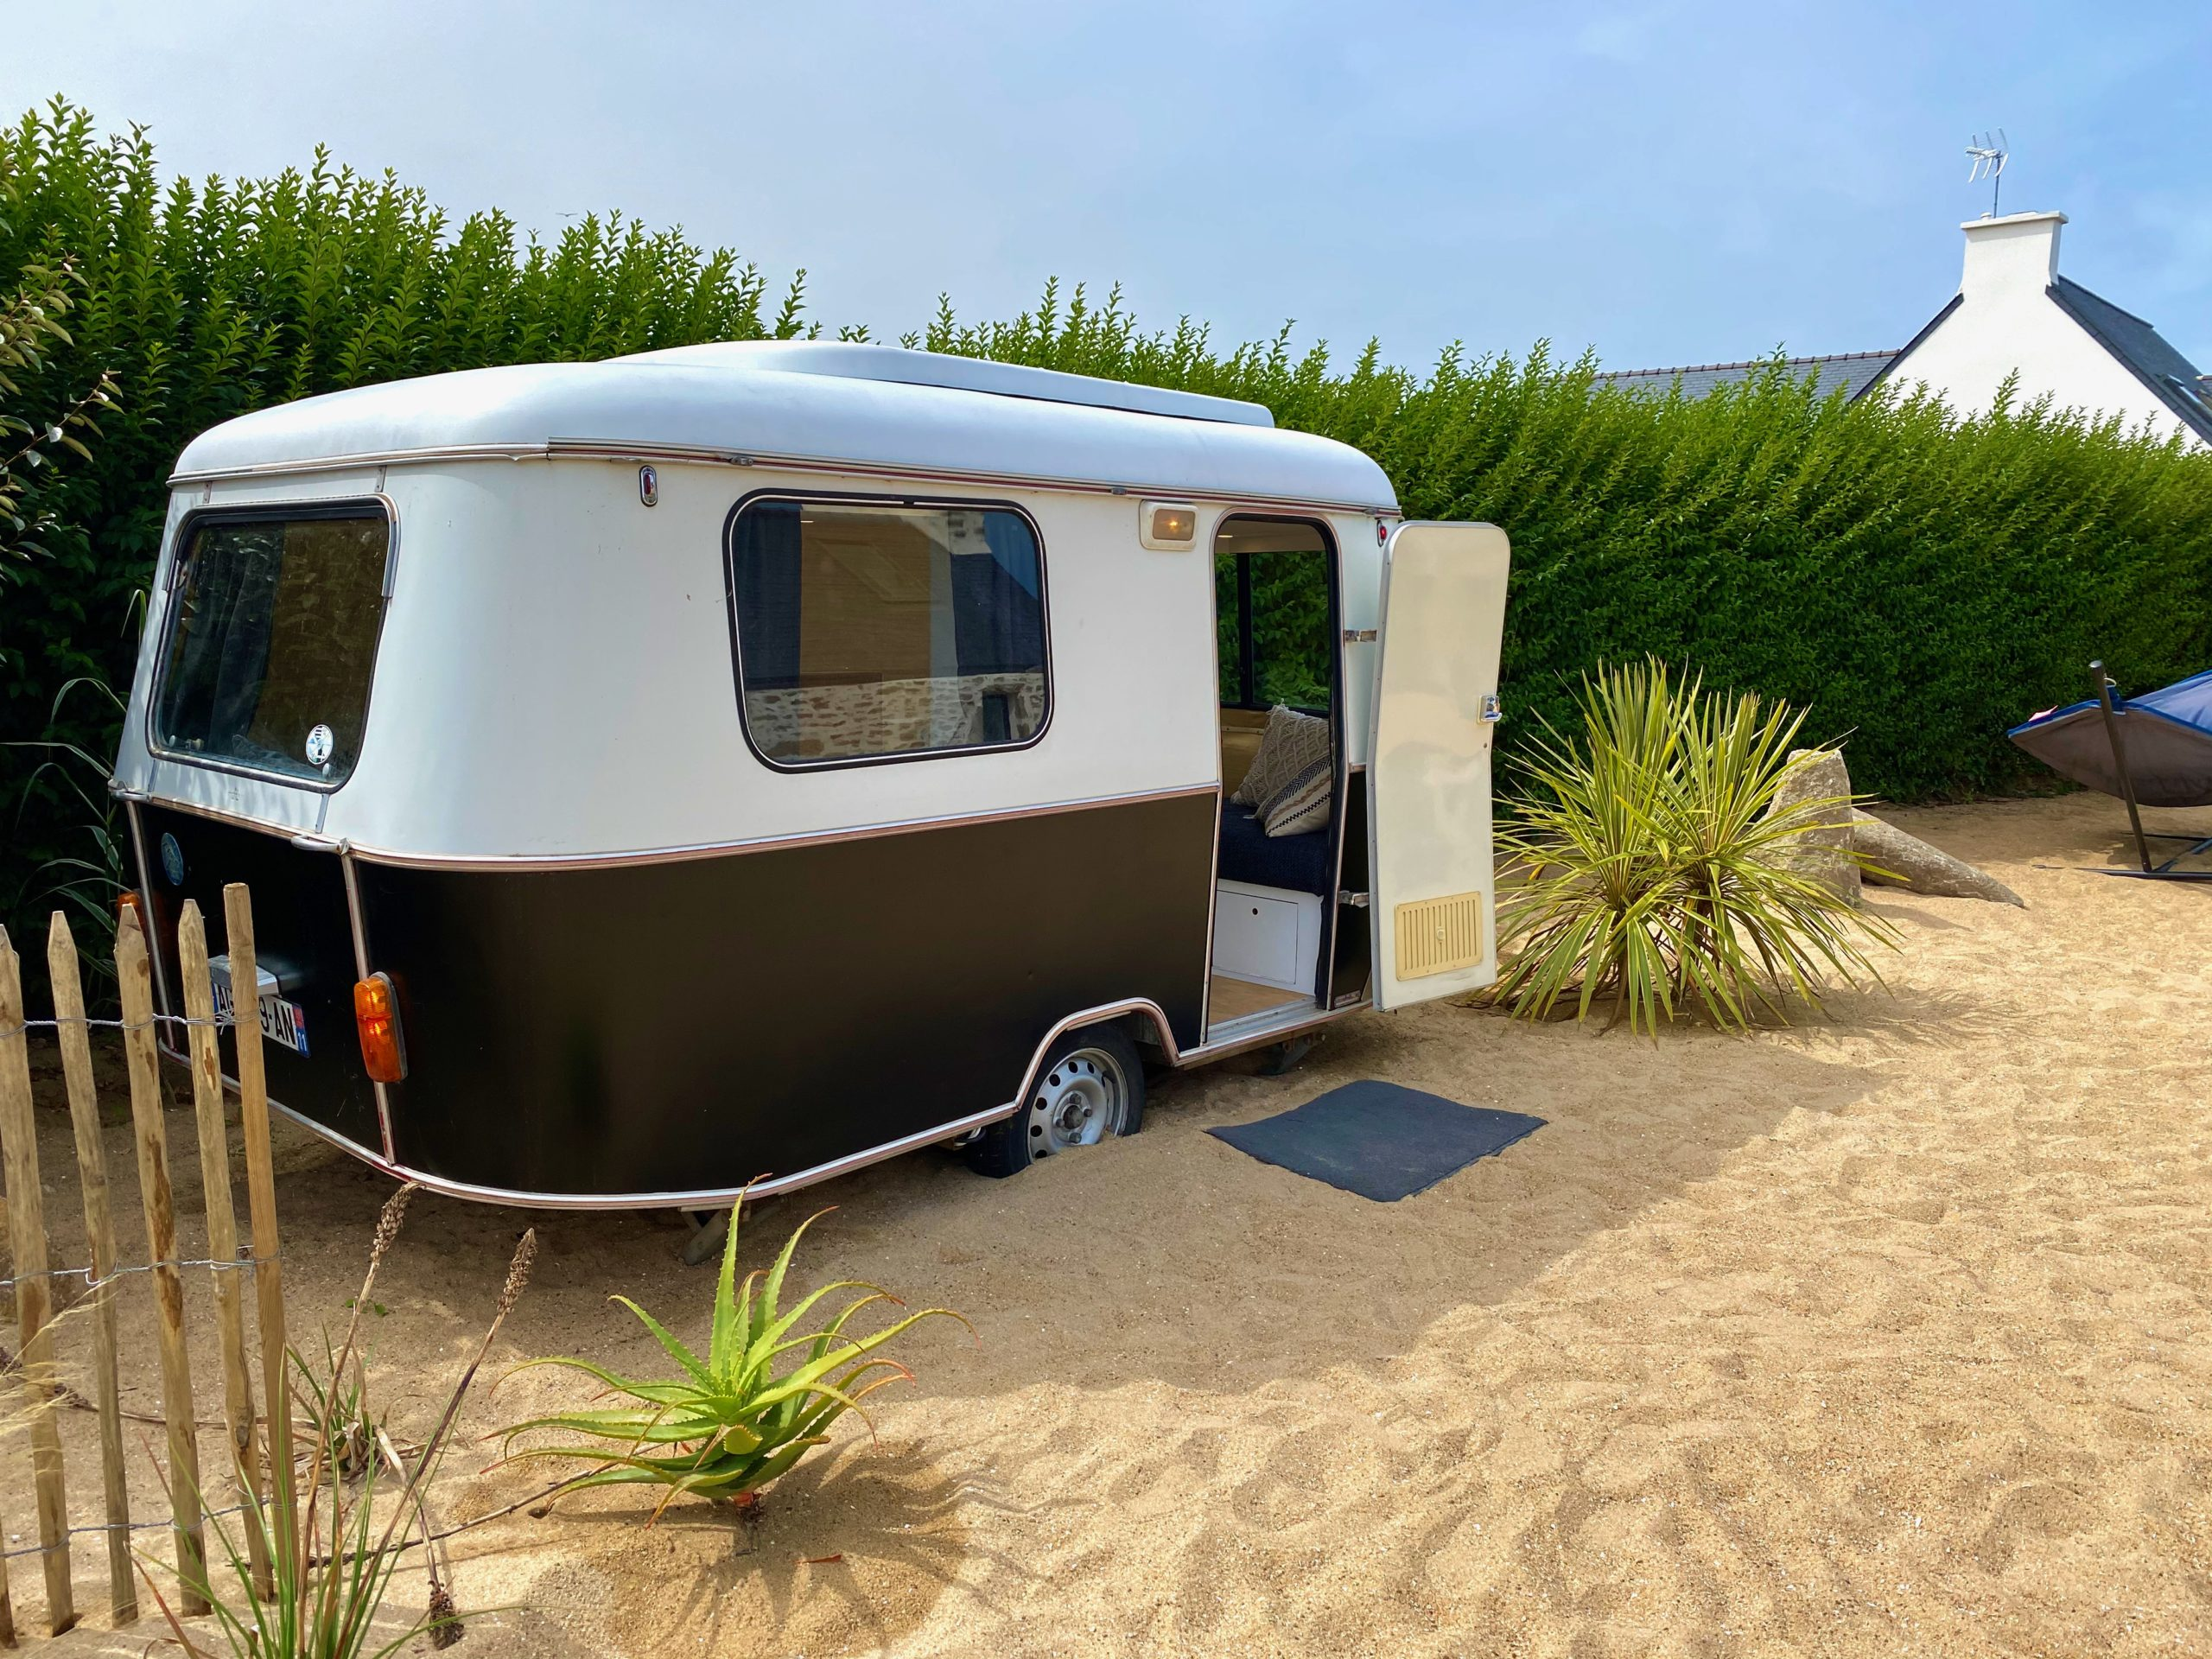 Renovated caravan - Vintage look but comfortable equipment to have a drink, play cards, or even spend the night!